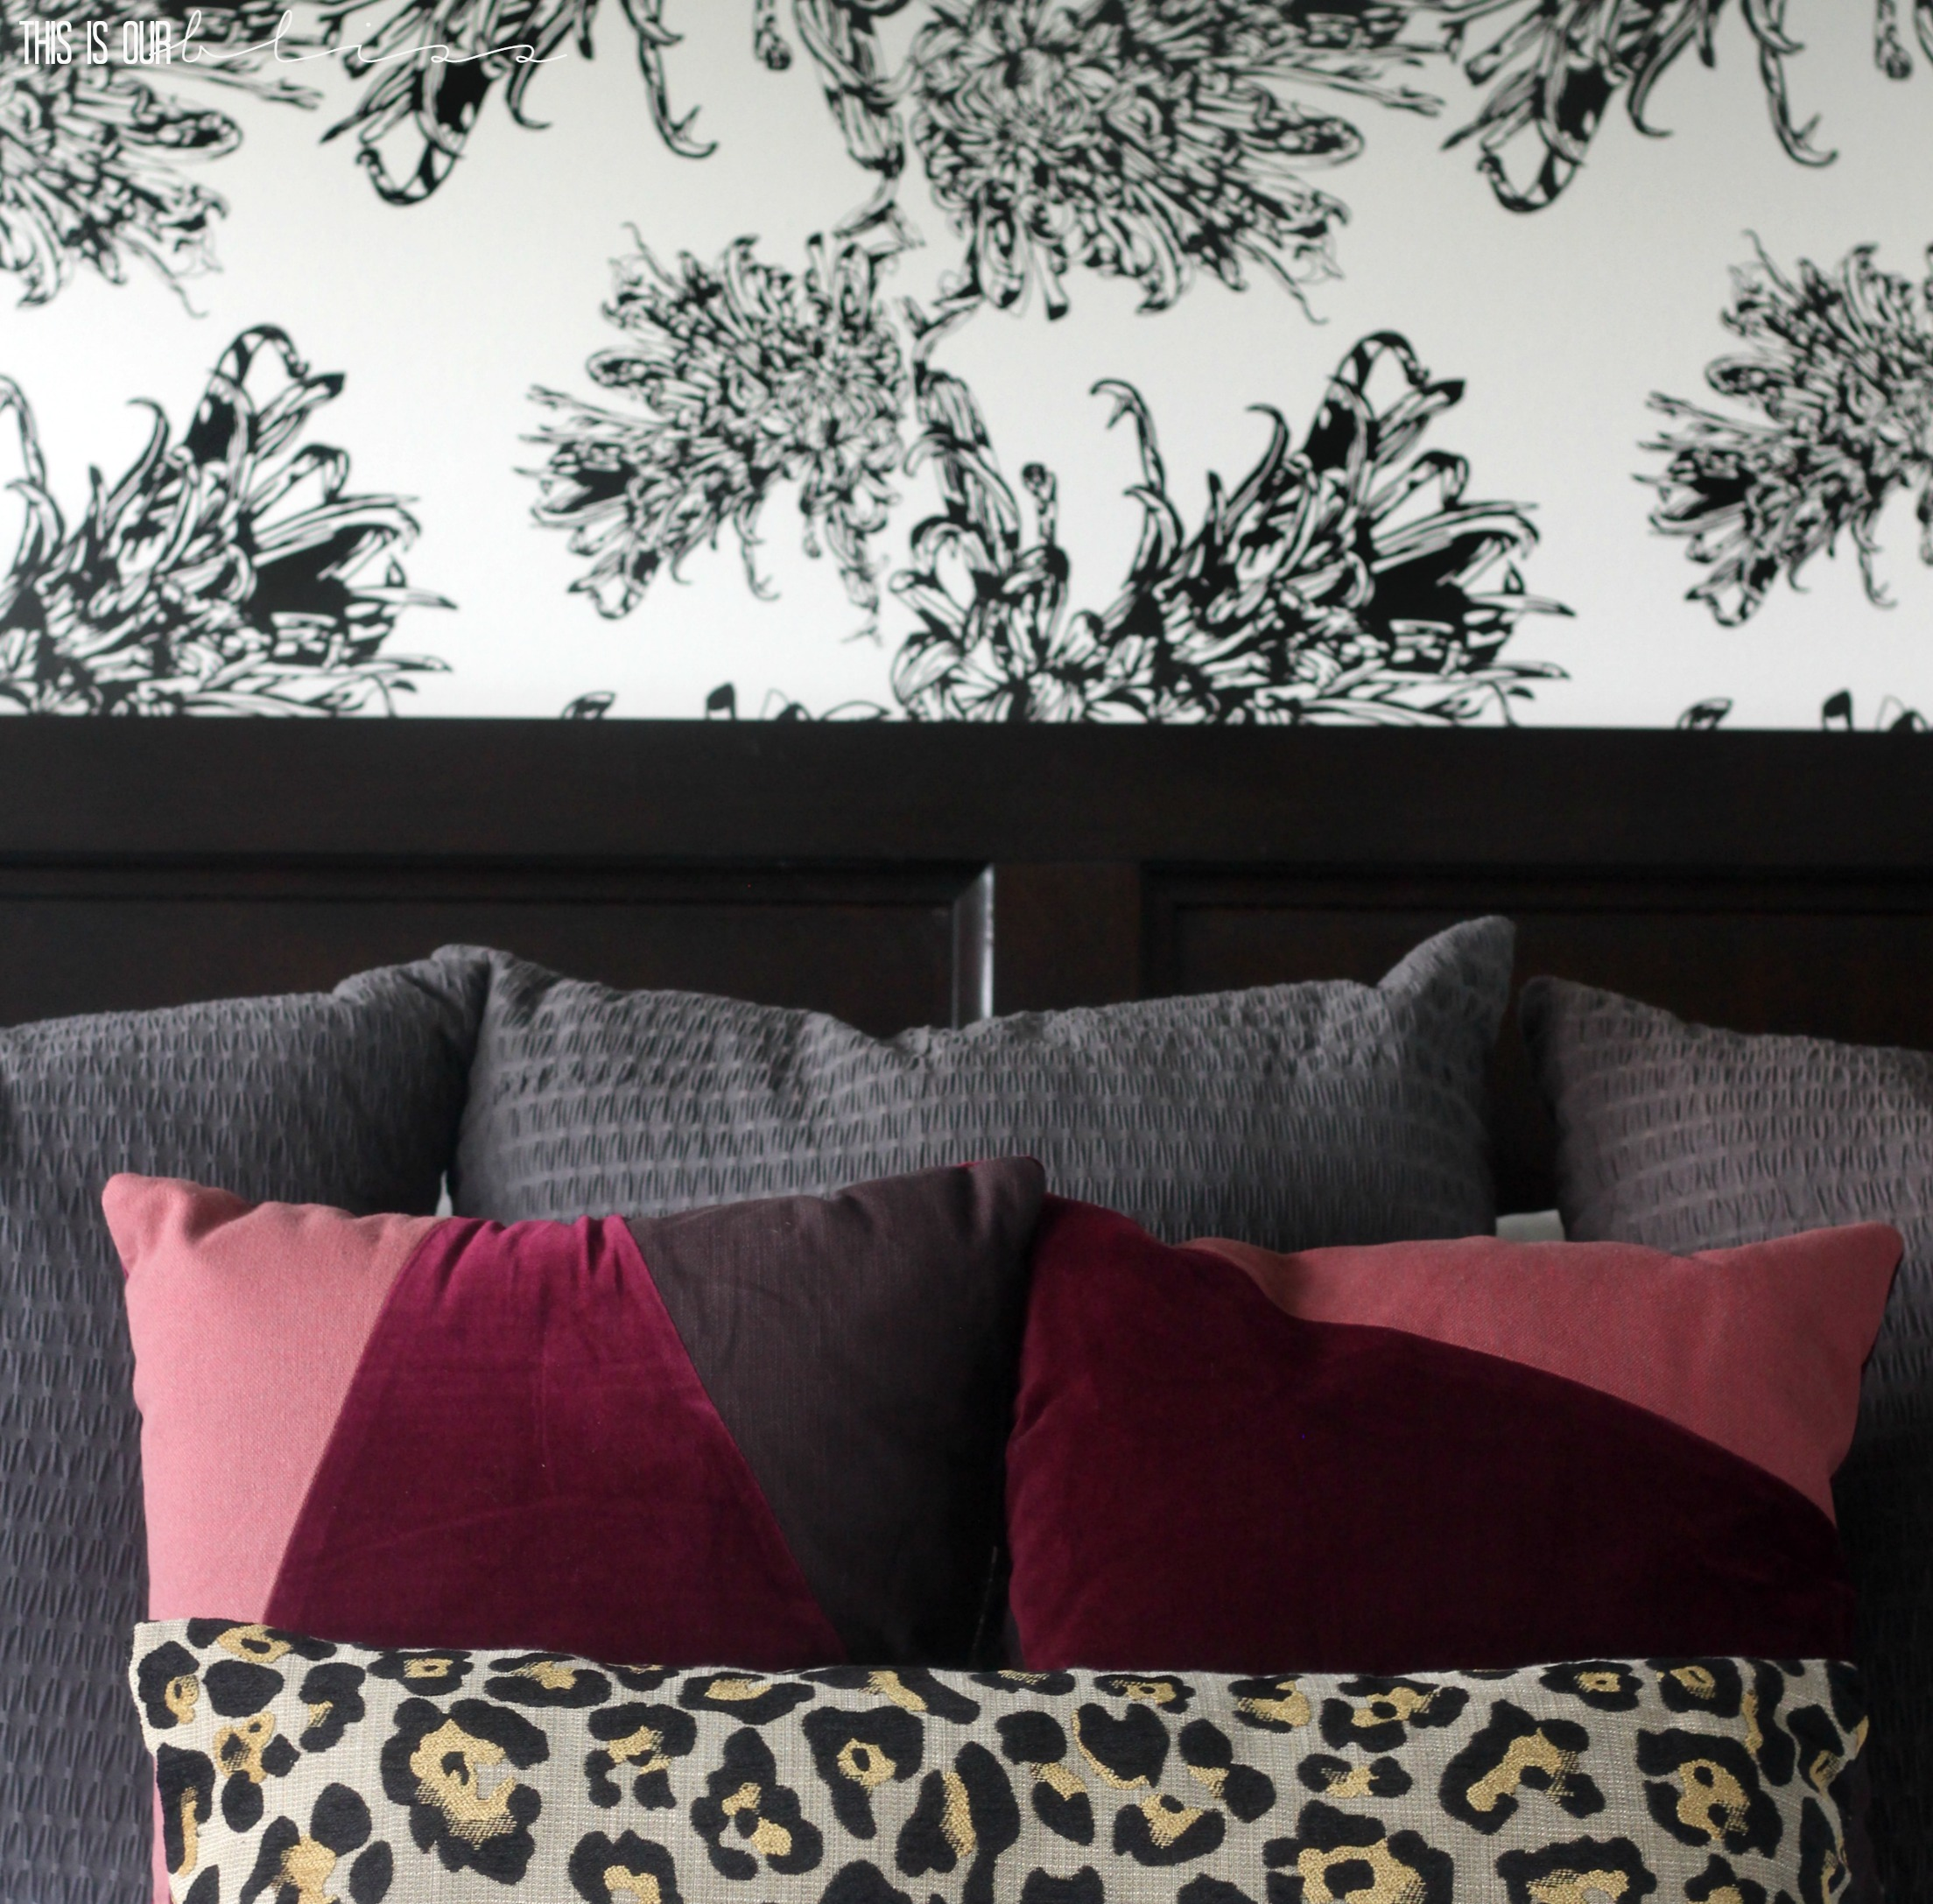 Master Bedroom Accent Wall with Wallpaper: This is our Bliss